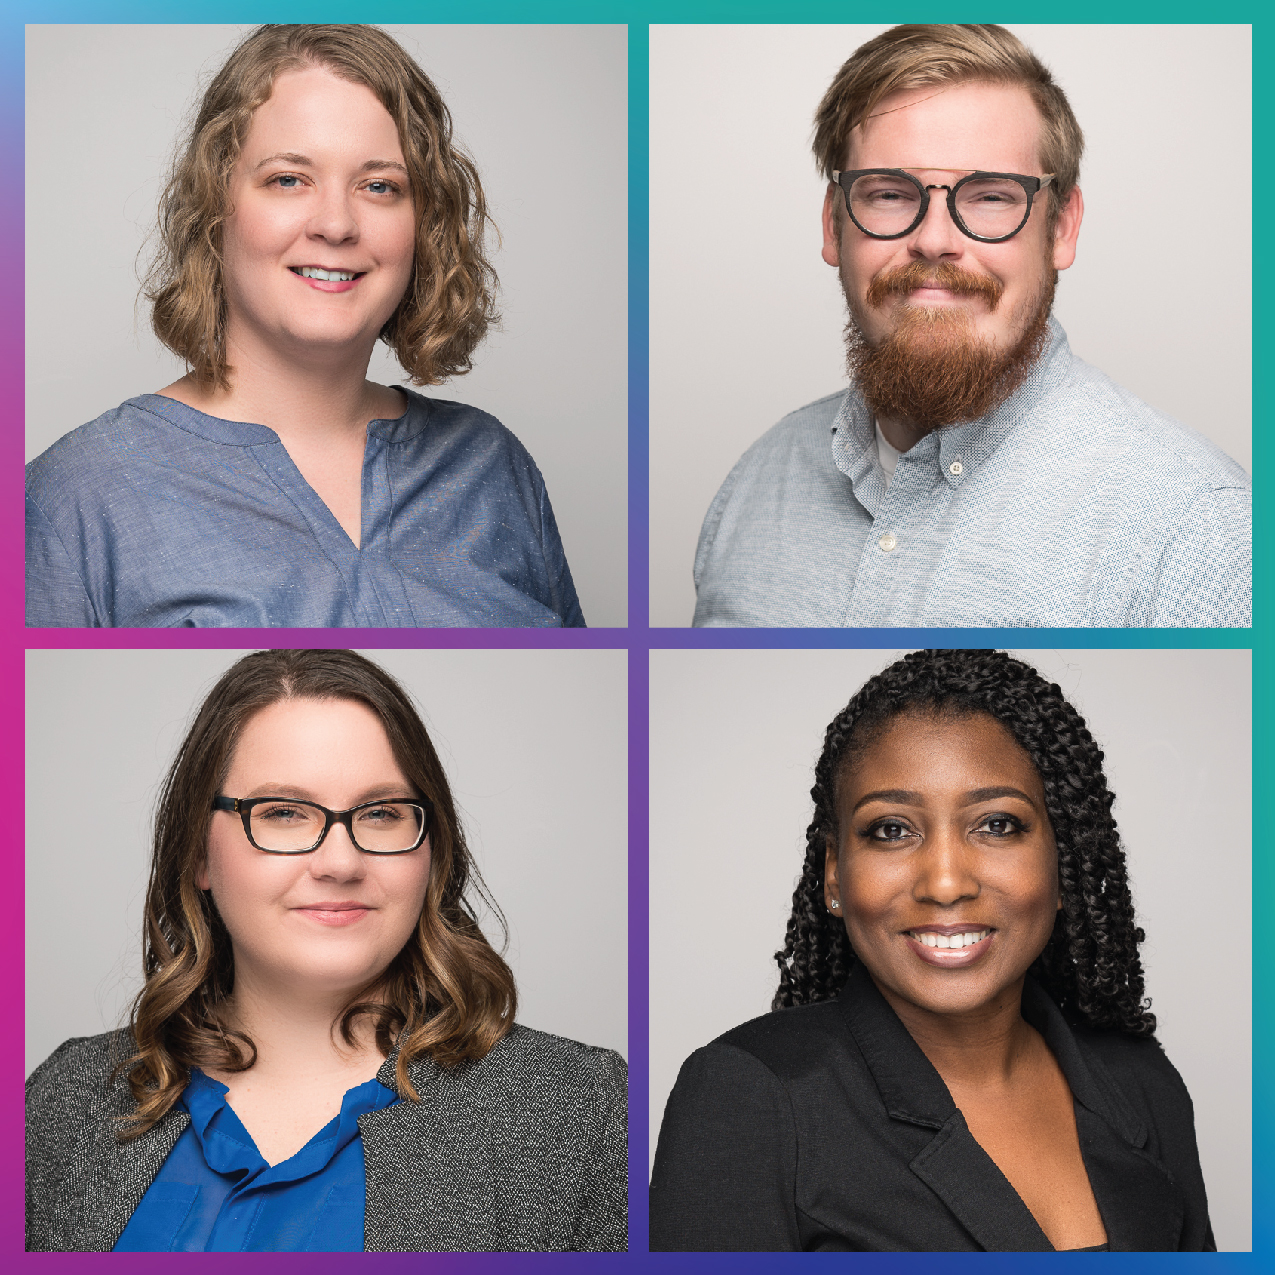 Four New Employees Added to the H+C Team